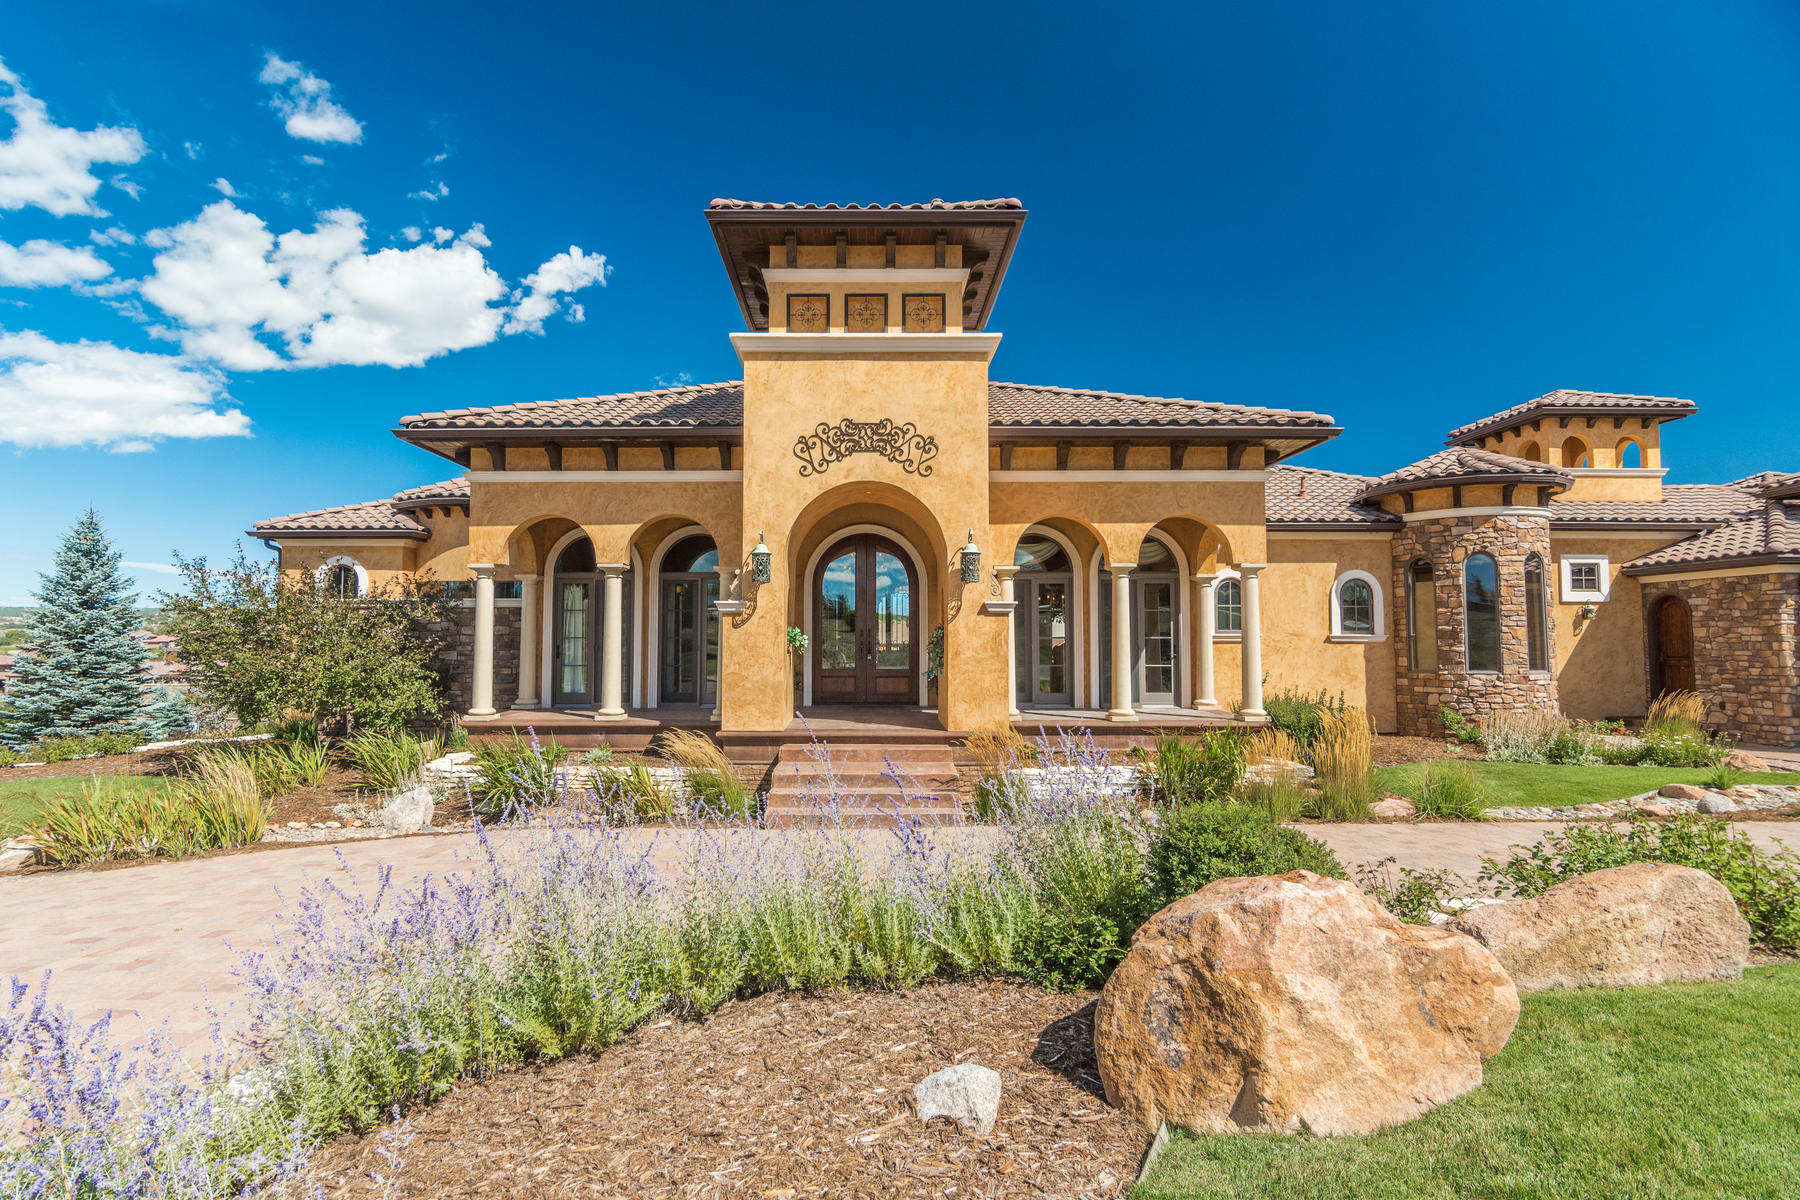 Single Family Homes for Active at Mediterranean Villa in Flying Horse 1814 Vine Cliff Heights Colorado Springs, Colorado 80921 United States